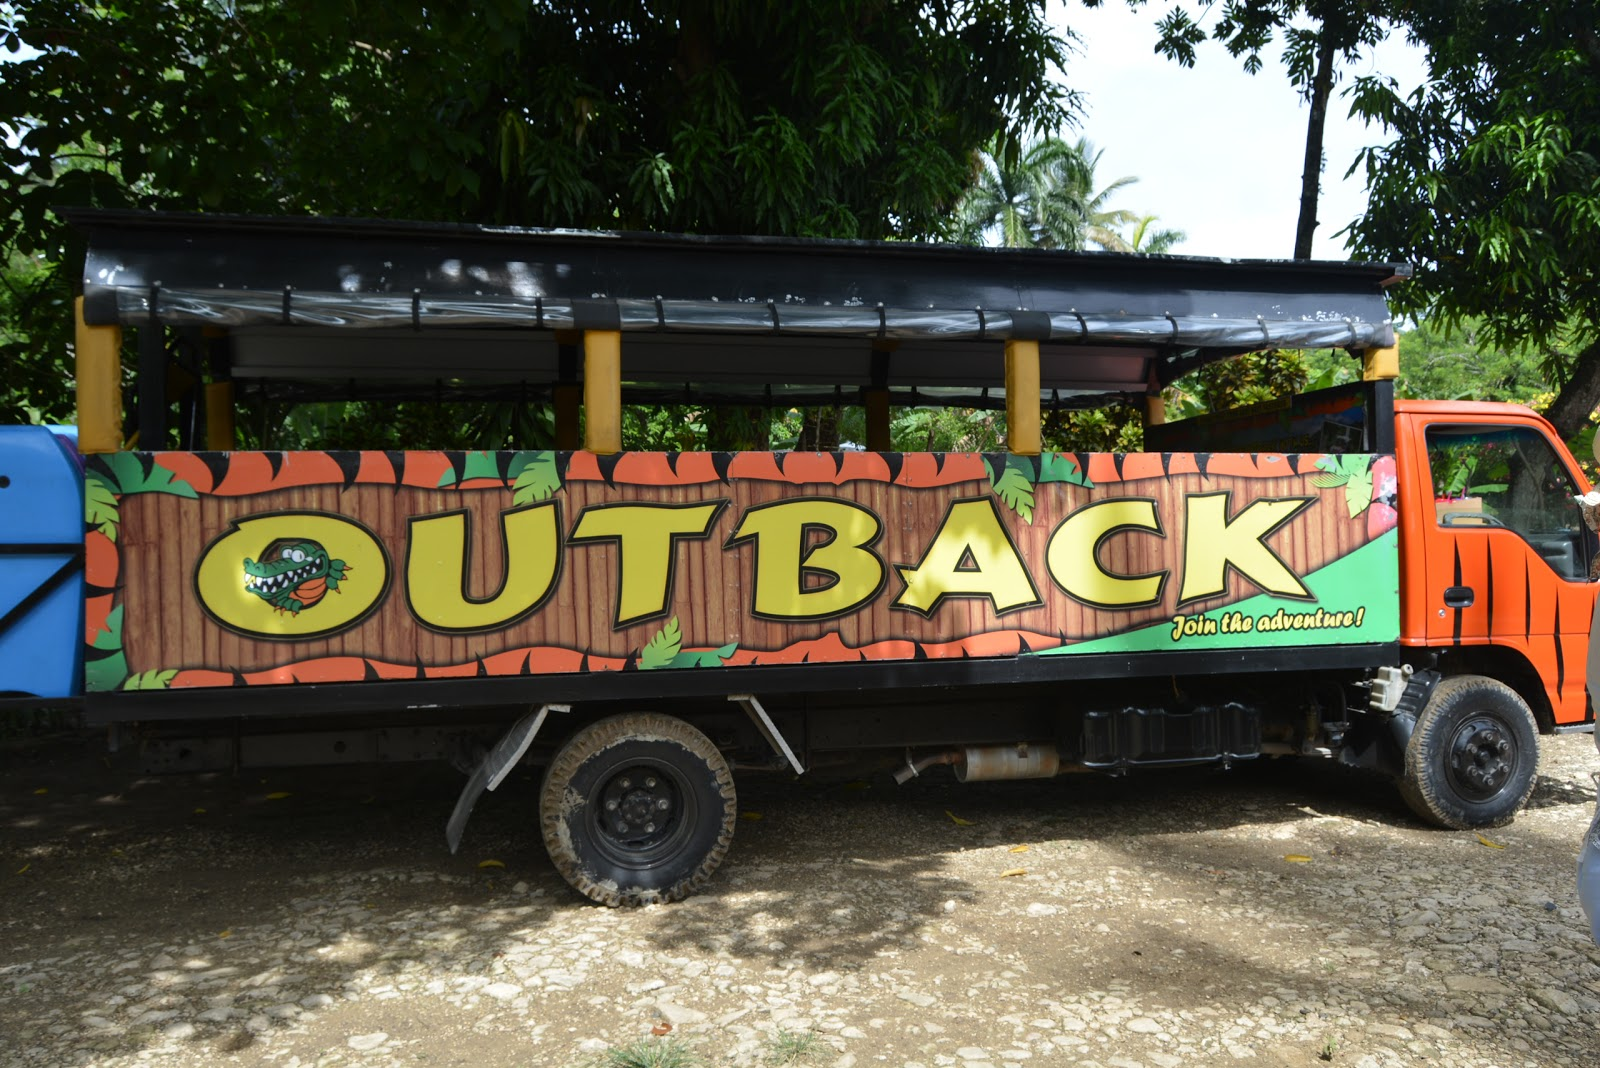 outback adventures, tour, trip, excursion, buggy, safari, holiday, travel, dominican republic,